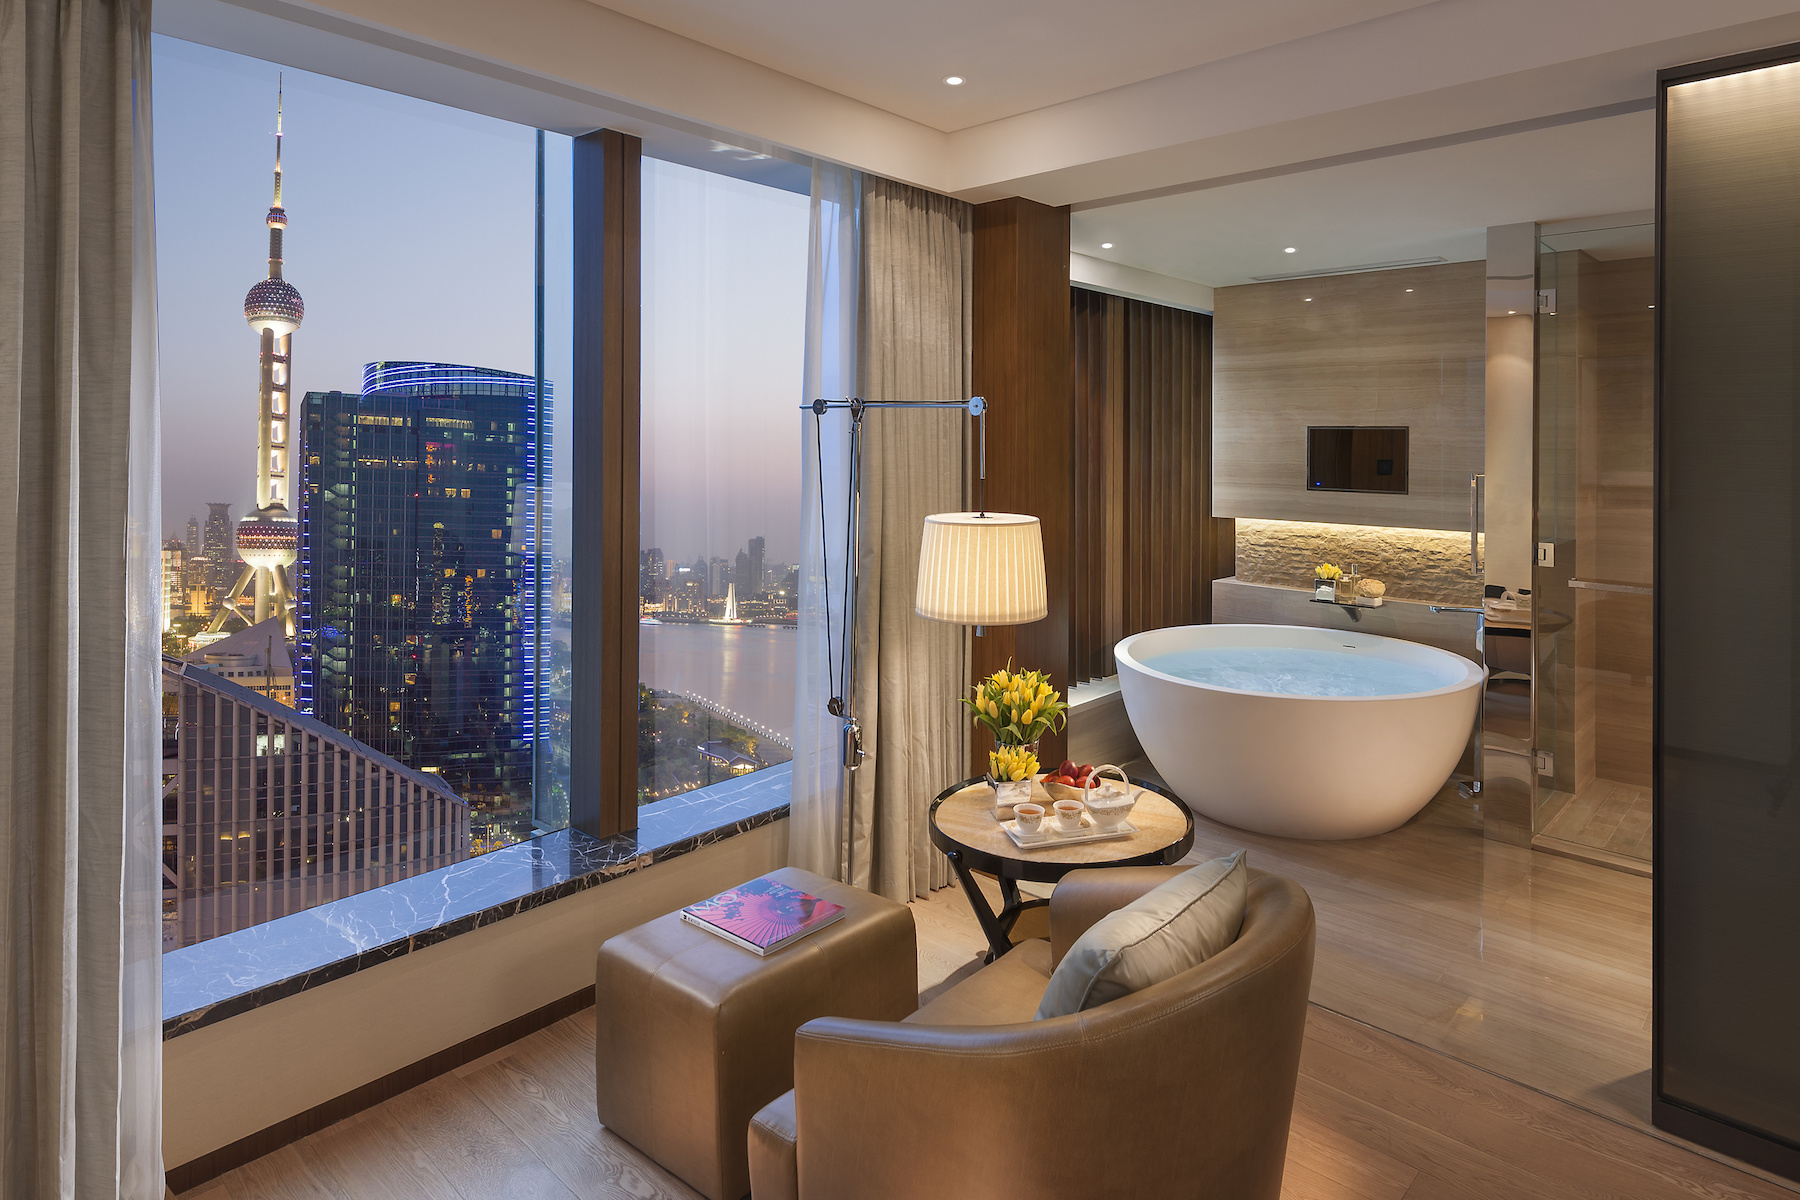 shanghai-room-mandarin-river-bathroom.jpg